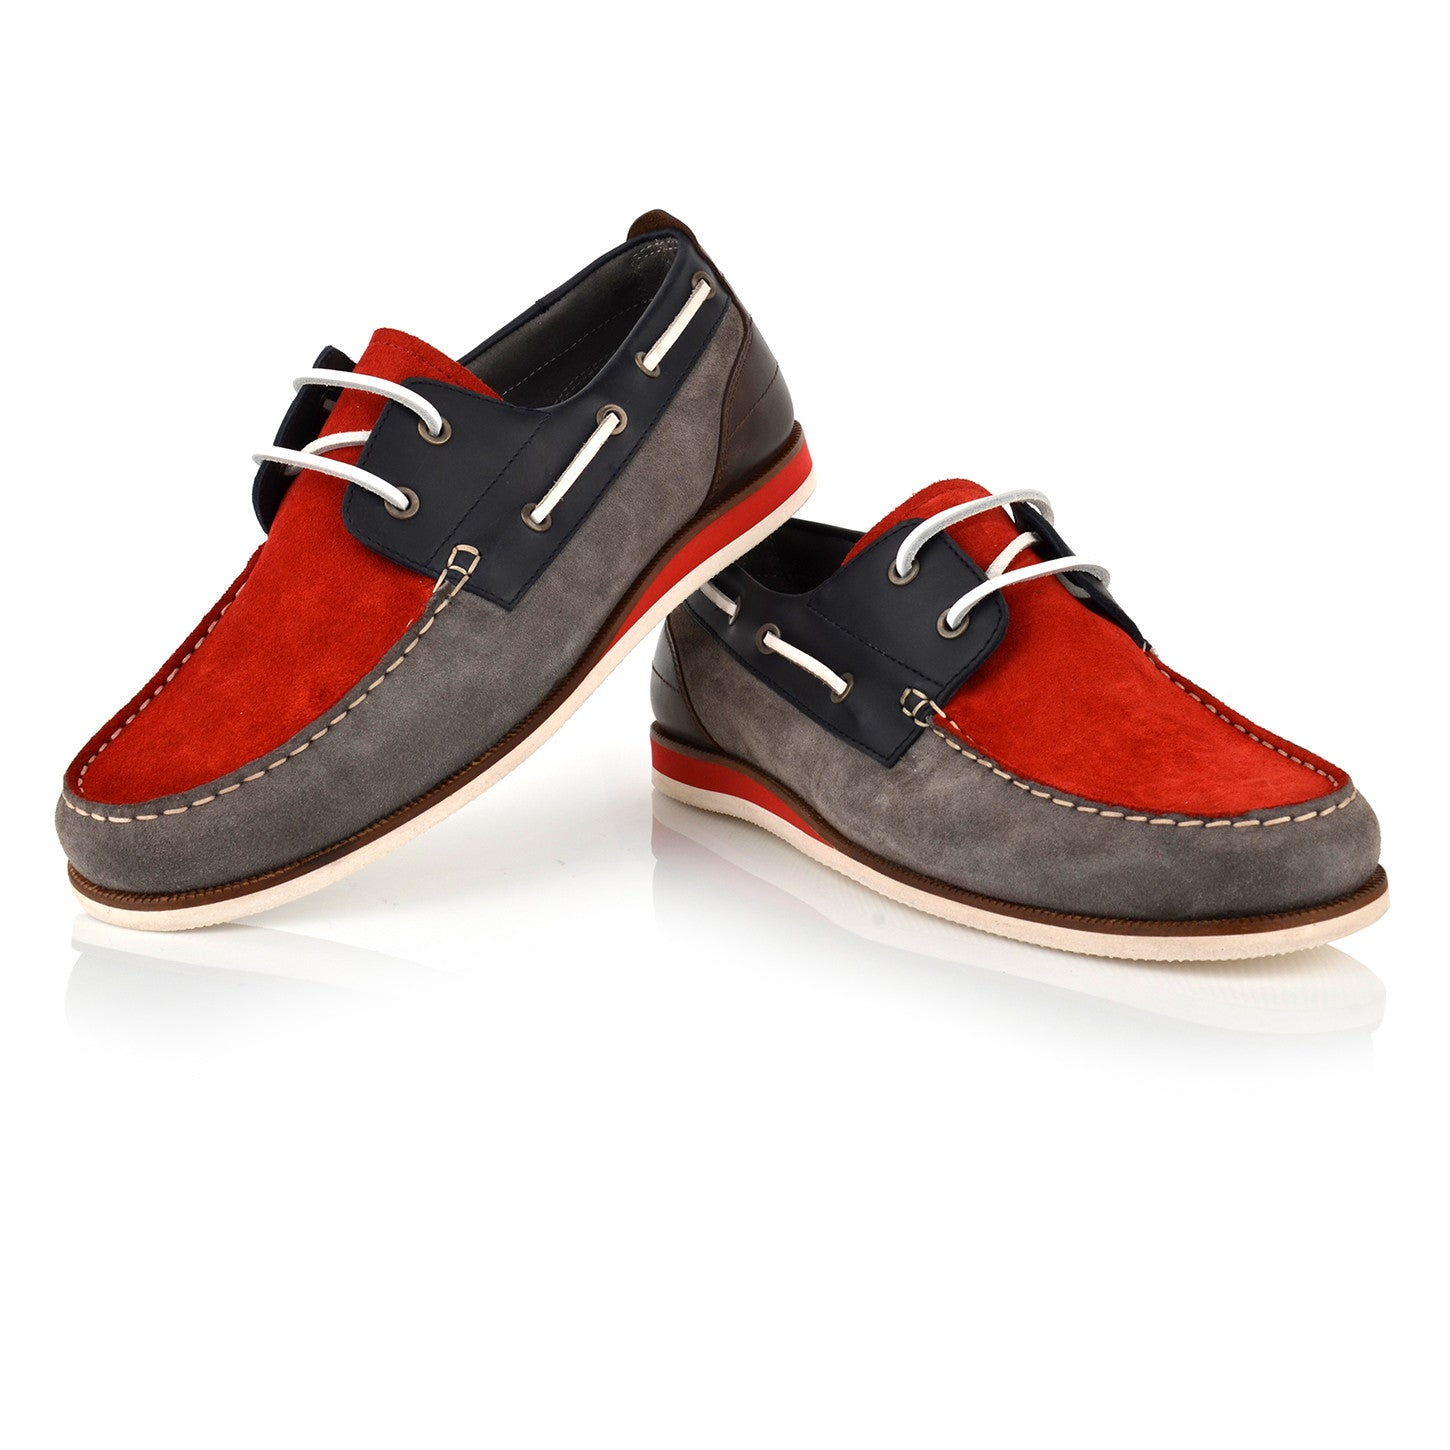 LM470 - Language Sail Men's Casual Red Boat Shoes